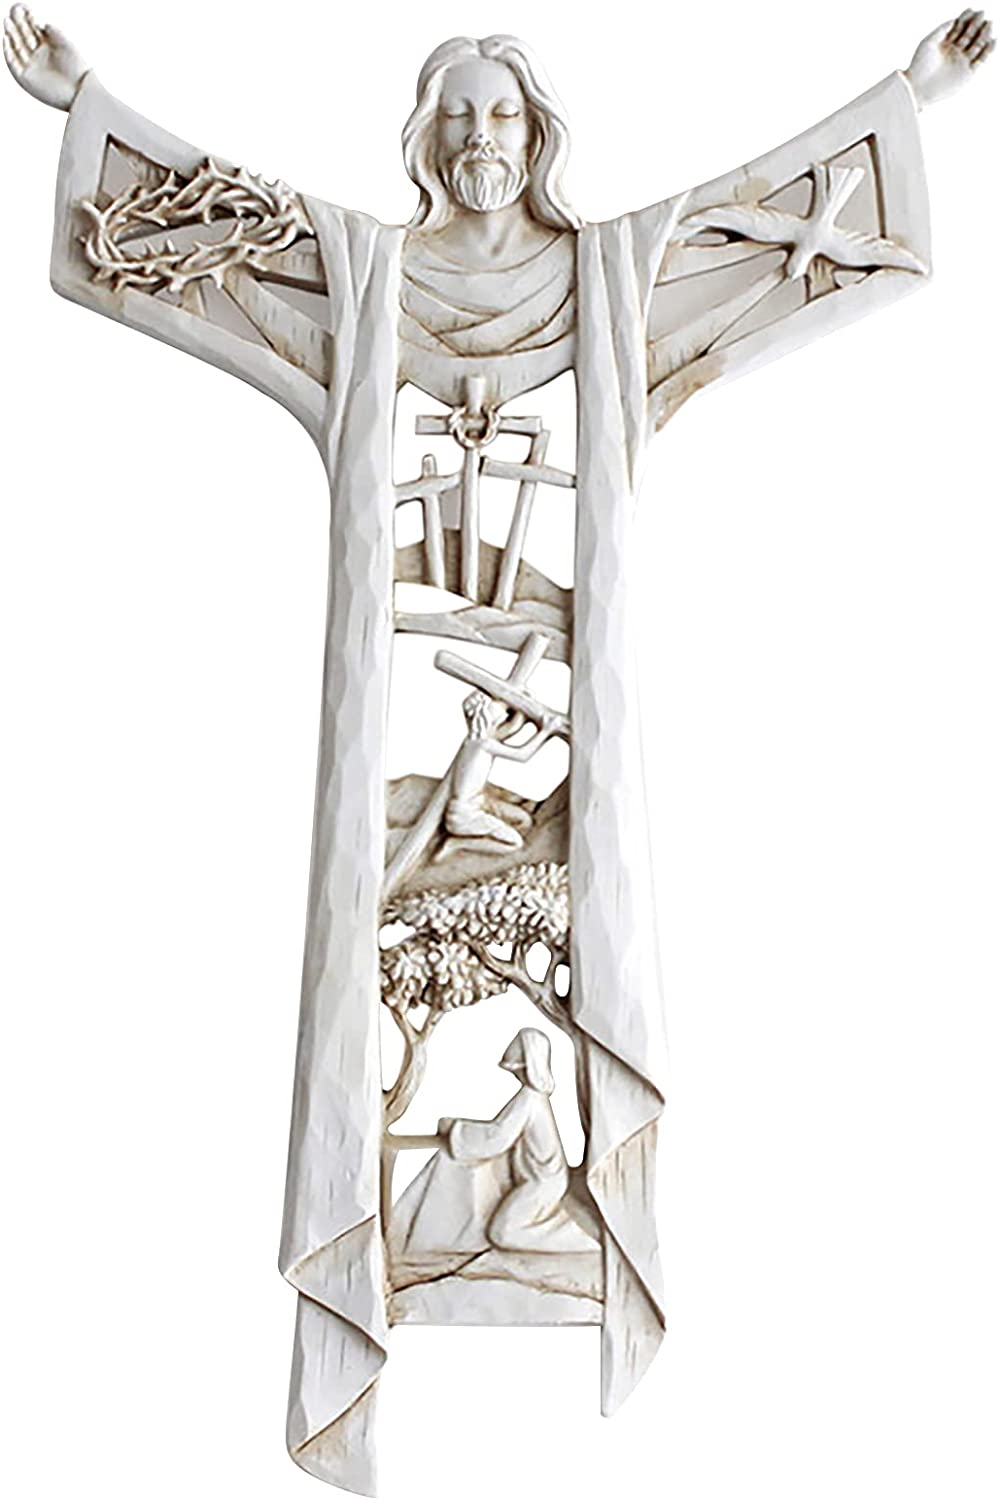 A Risen lowest price Christ Wall Cross Rise Supper Outlet sale feature Easter - Last